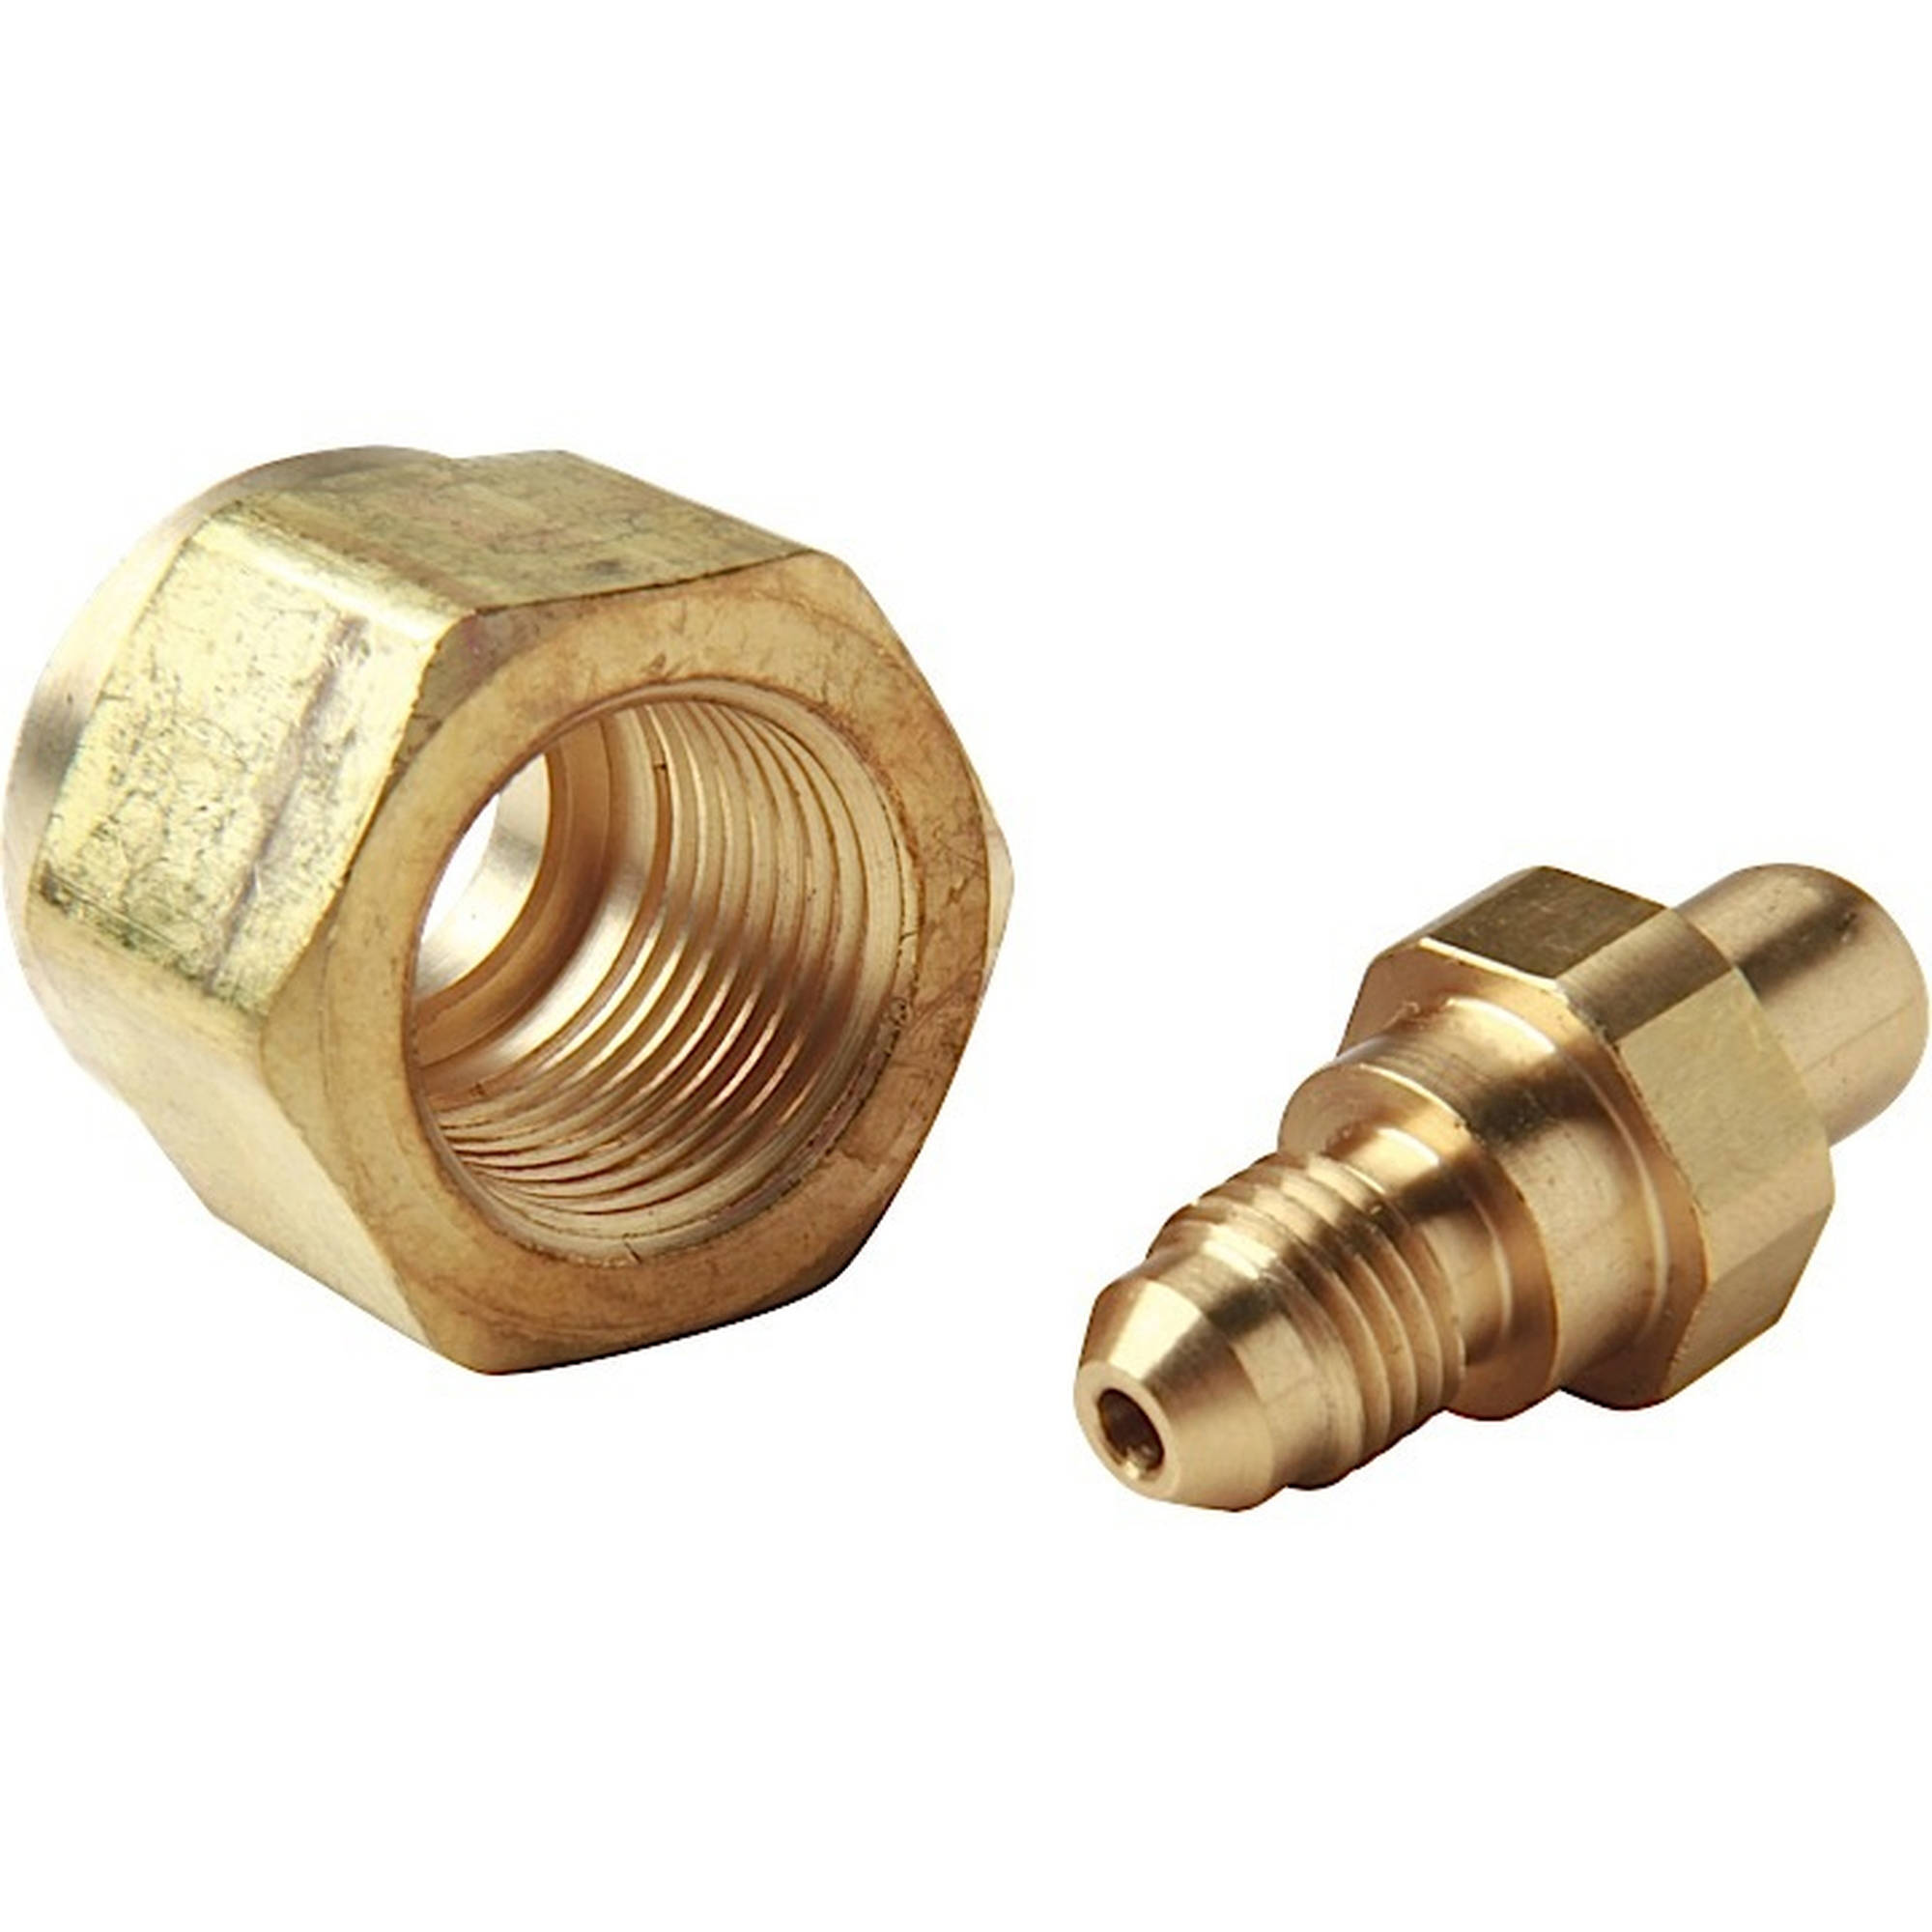 Med Nut/4An Nipple Sm Thread Replacement Auto Part, Easy to Install